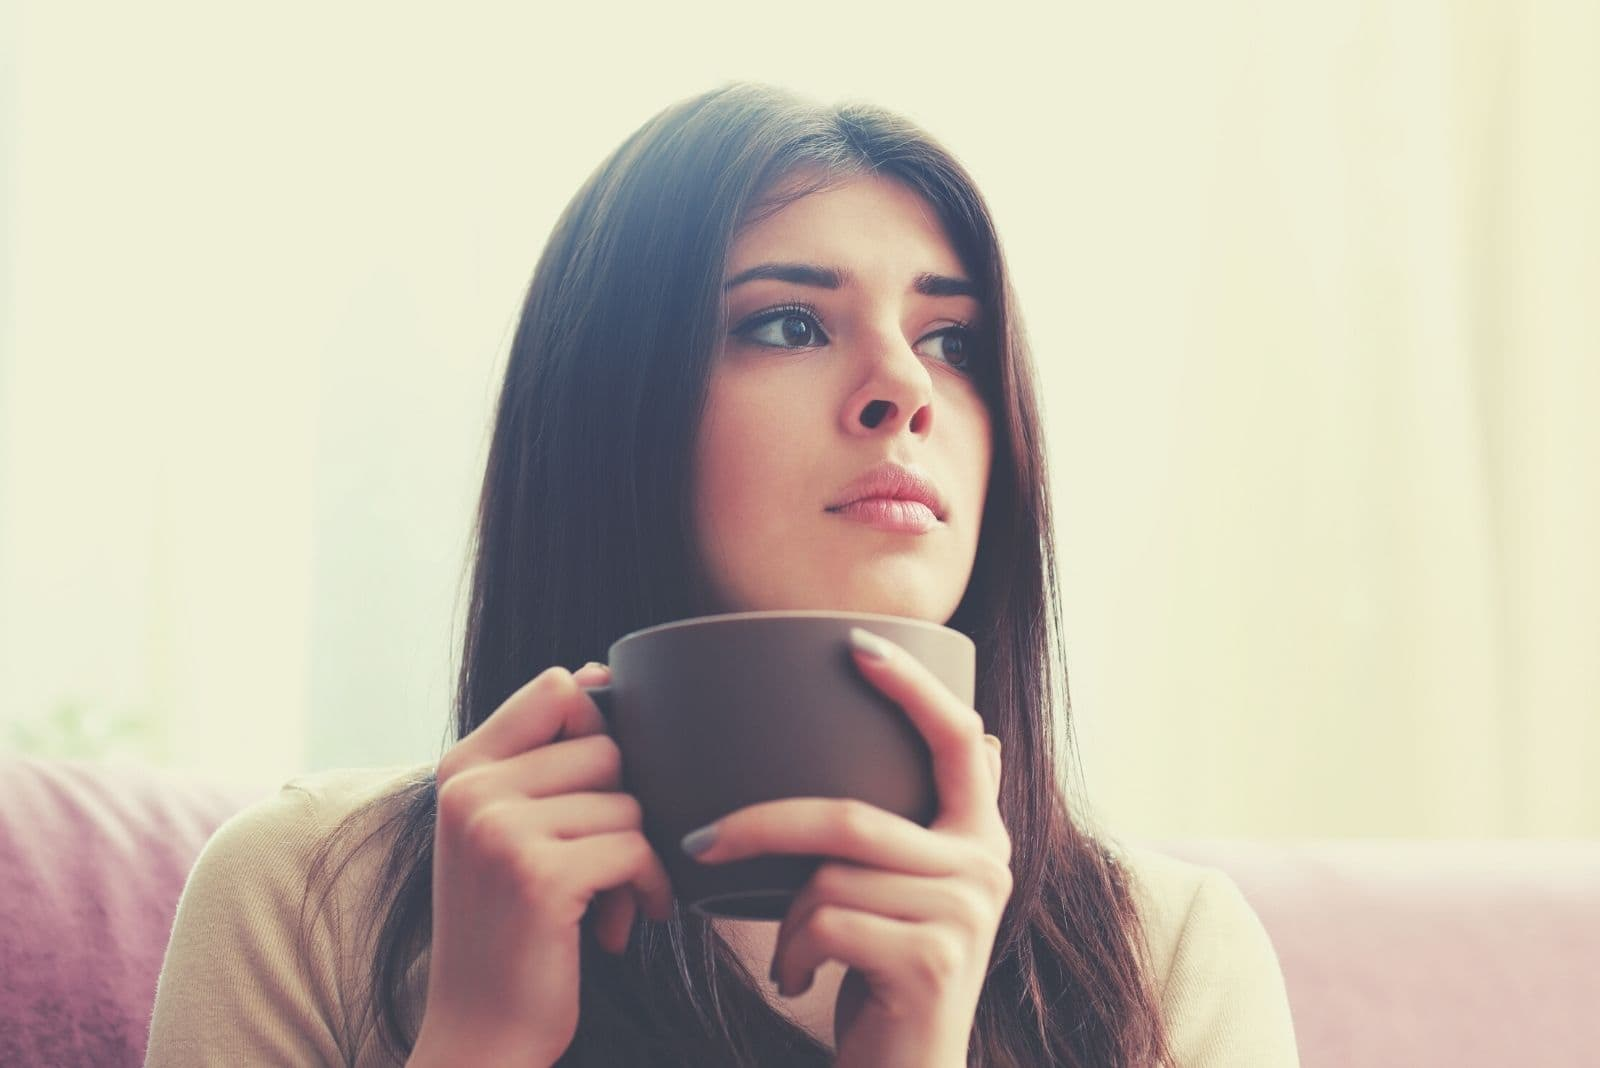 young brunette woman thinking deeply while drinking coffee inside home